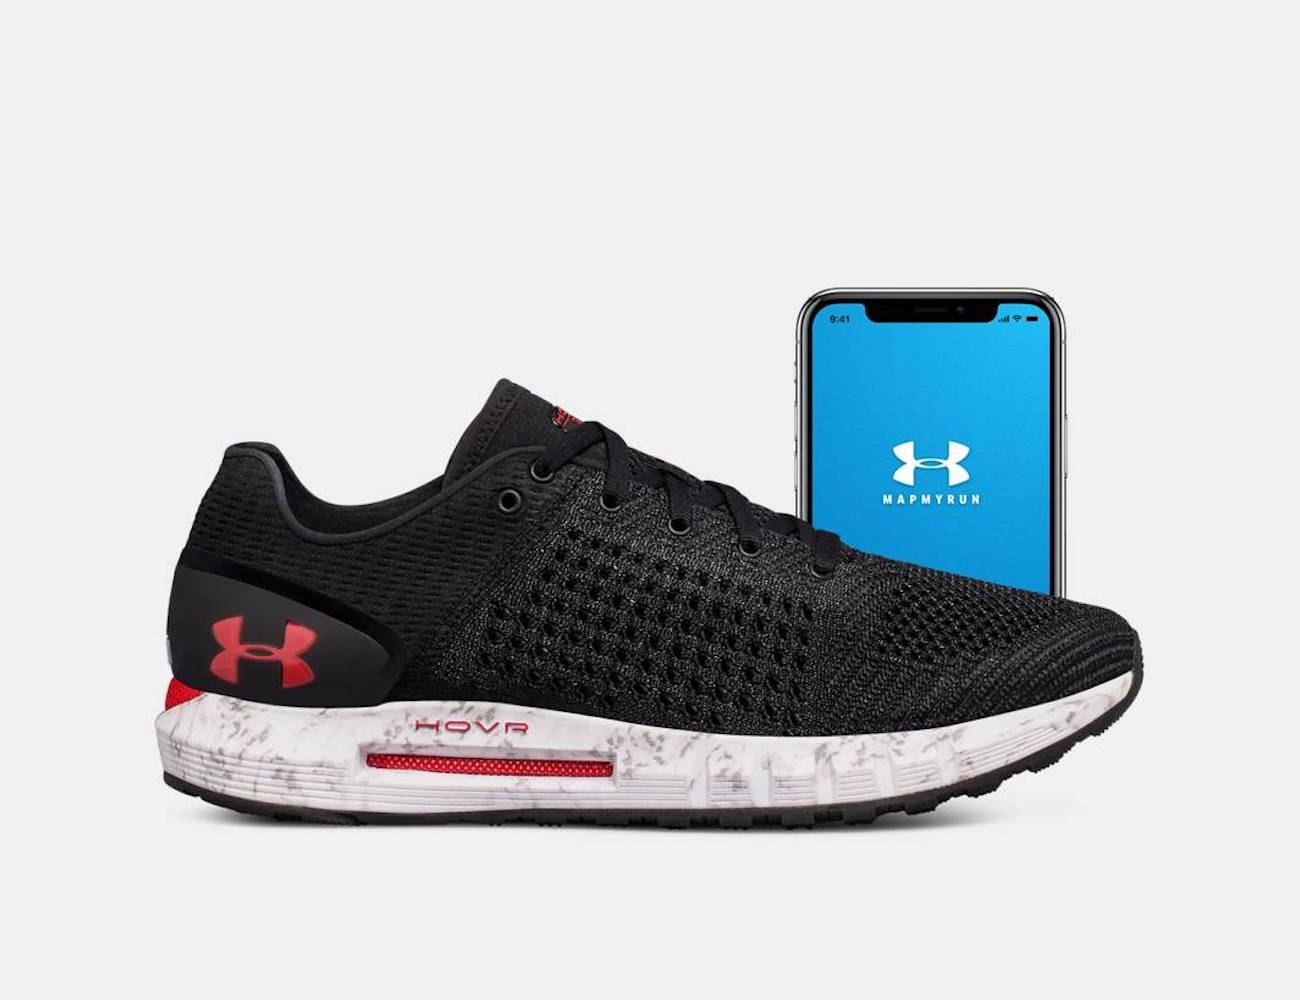 Under Armour HOVR Sonic Connected Running Shoes